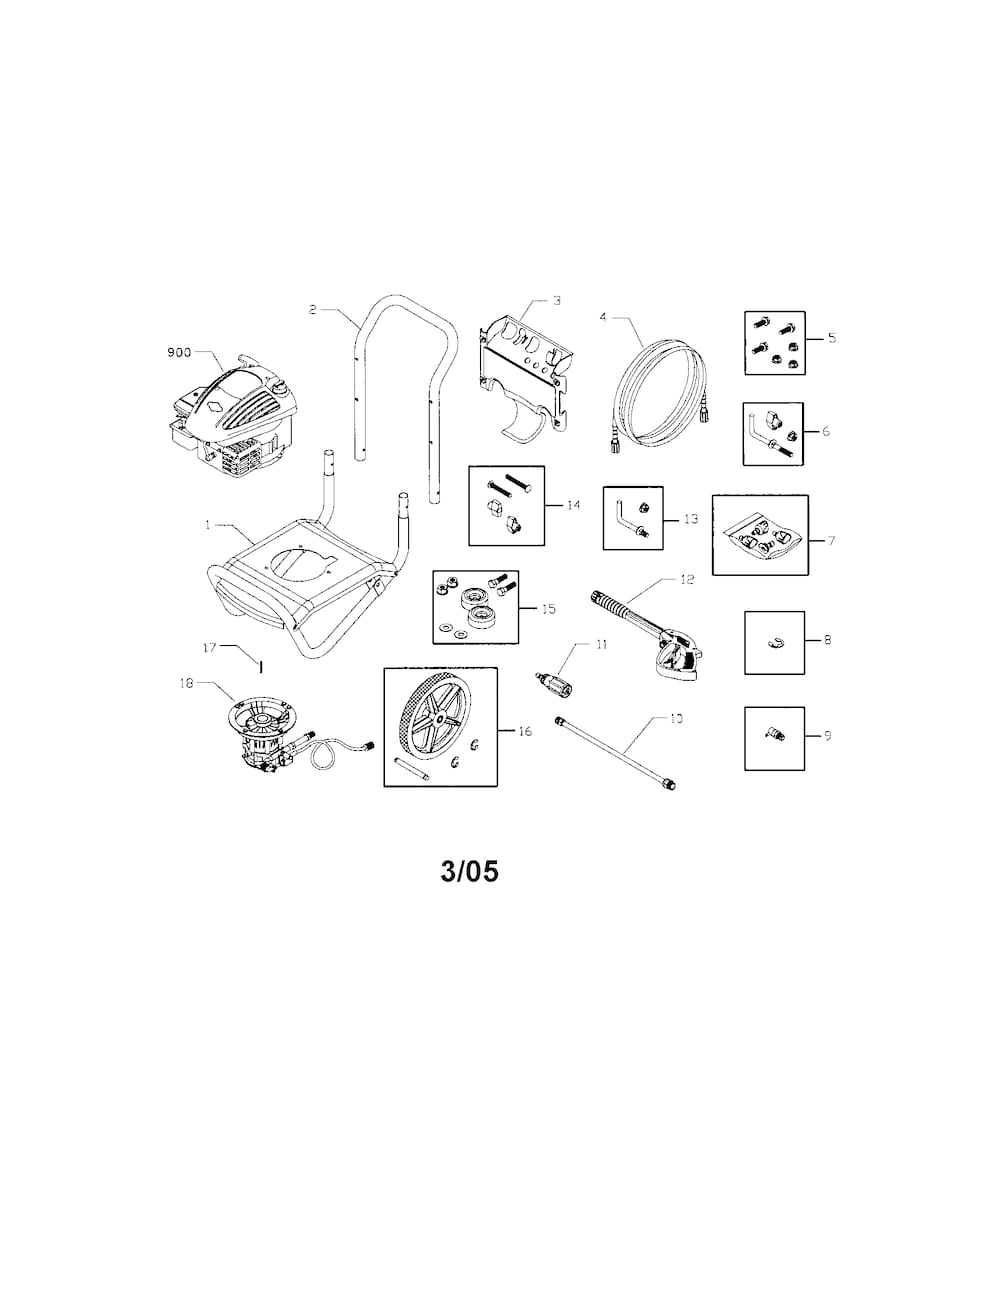 Briggs & Stratton Pressure Washer Parts | Model 020228 | Sears throughout Briggs And Stratton 500 Series Parts Diagram